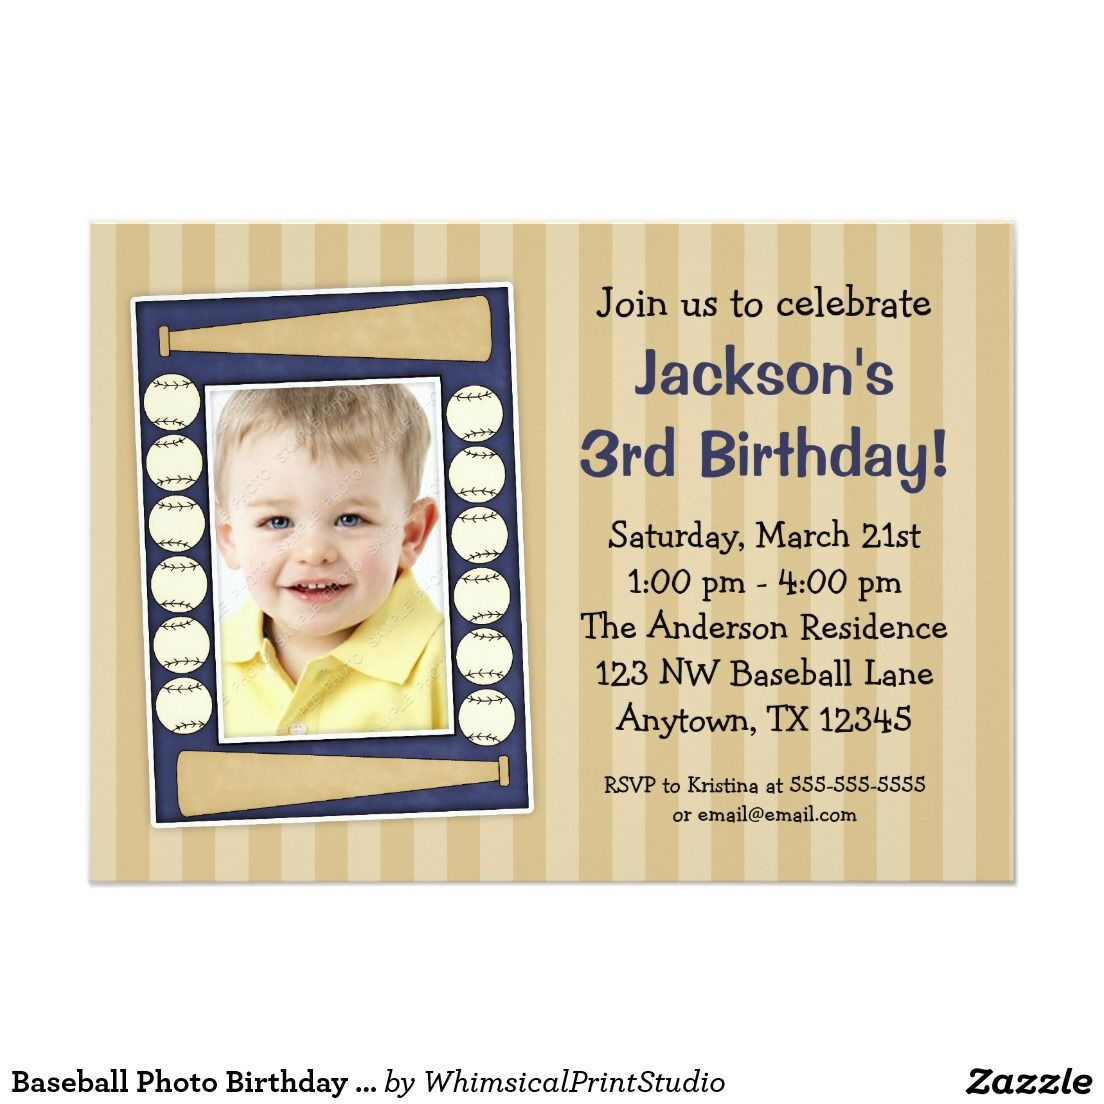 Baseball Photo Birthday Party Blue 5x7 Paper Invitation Card